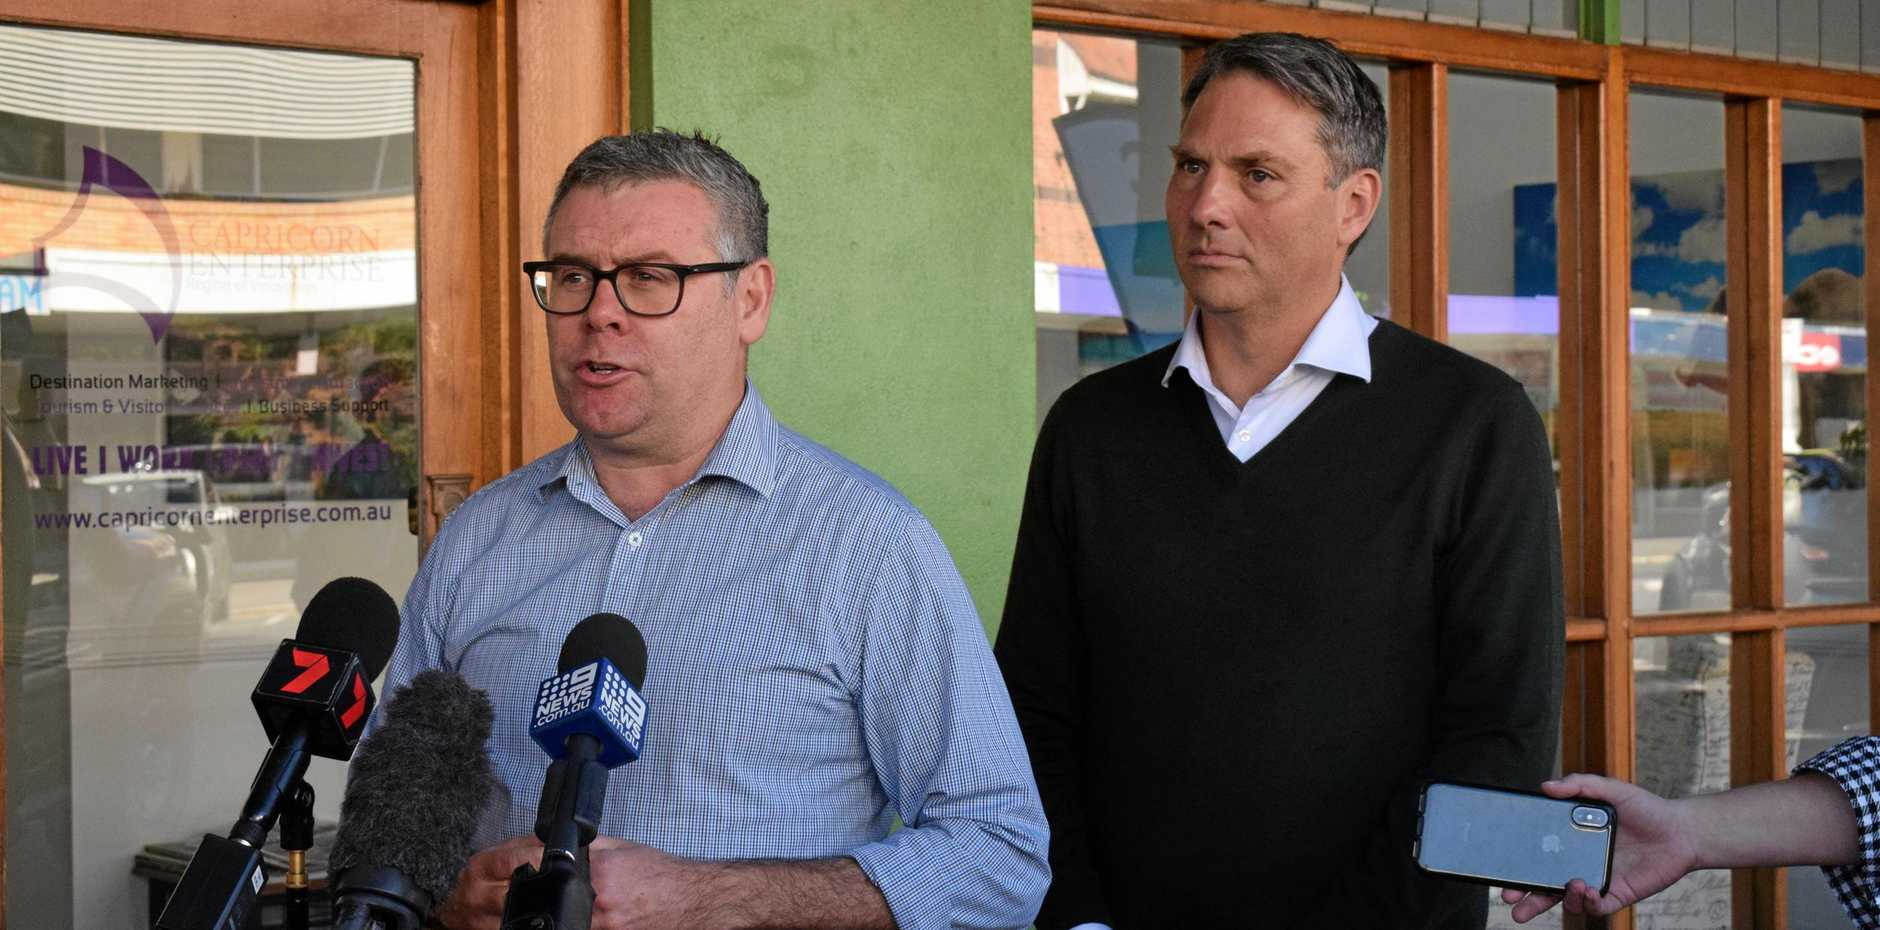 LISTENING TOUR: Shadow Minister for Northern Australia Murray Watt (left) and Labor deputy leader Richard Marles called on the government to speed up local infrastructure project roll-outs.